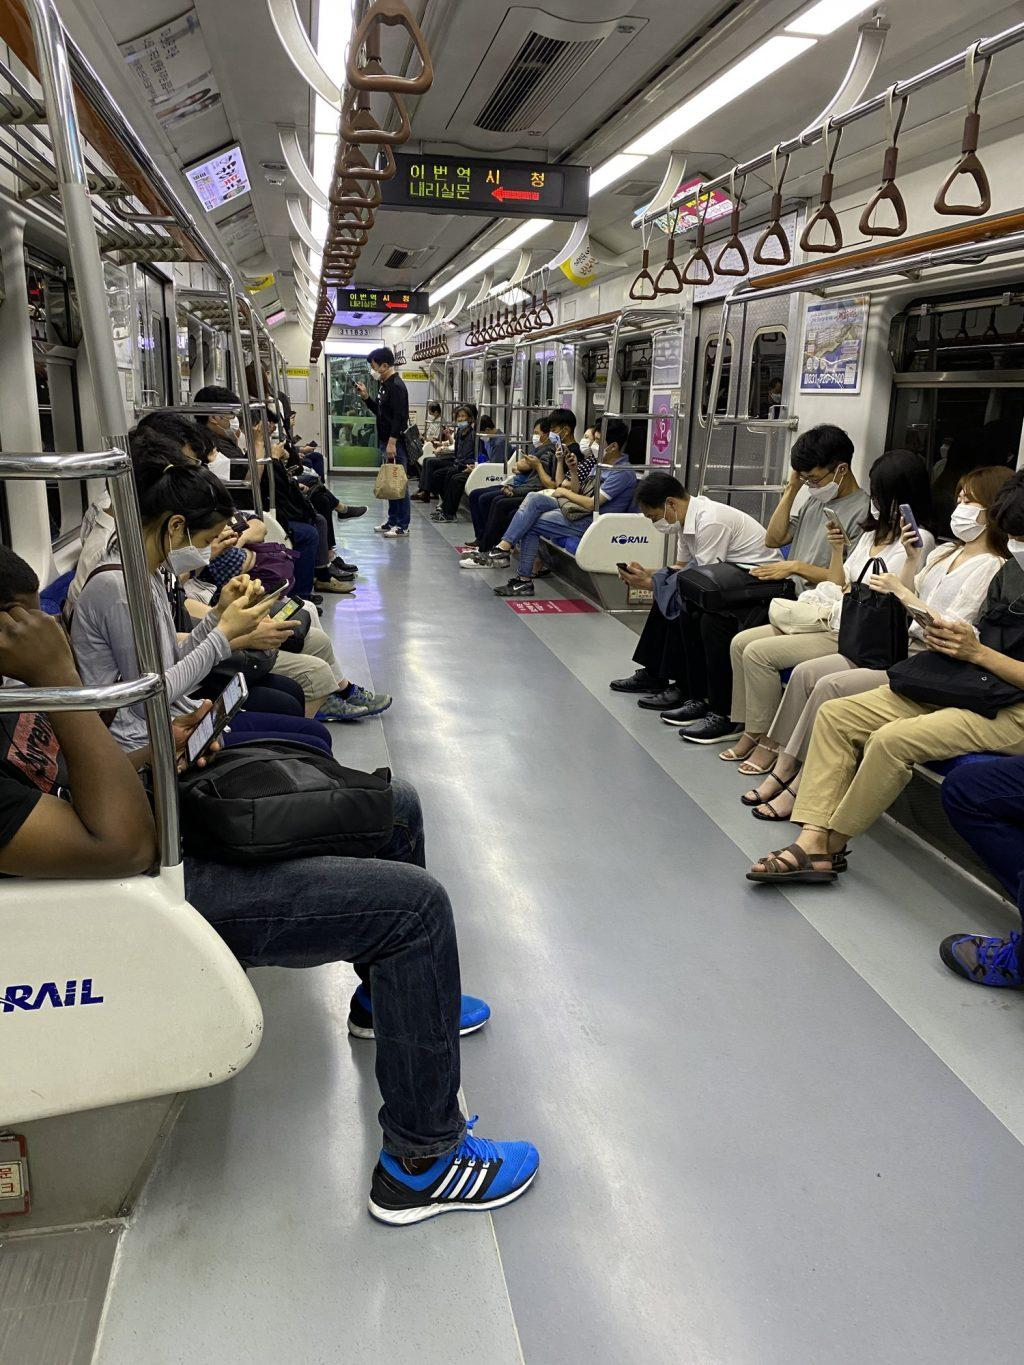 On Sept. 1, two days after the Seoul government raised COVID-19 regulations to level two-and-a-half, the subways remain crowded. Nearly everyone wore a mask while silently using their phones.